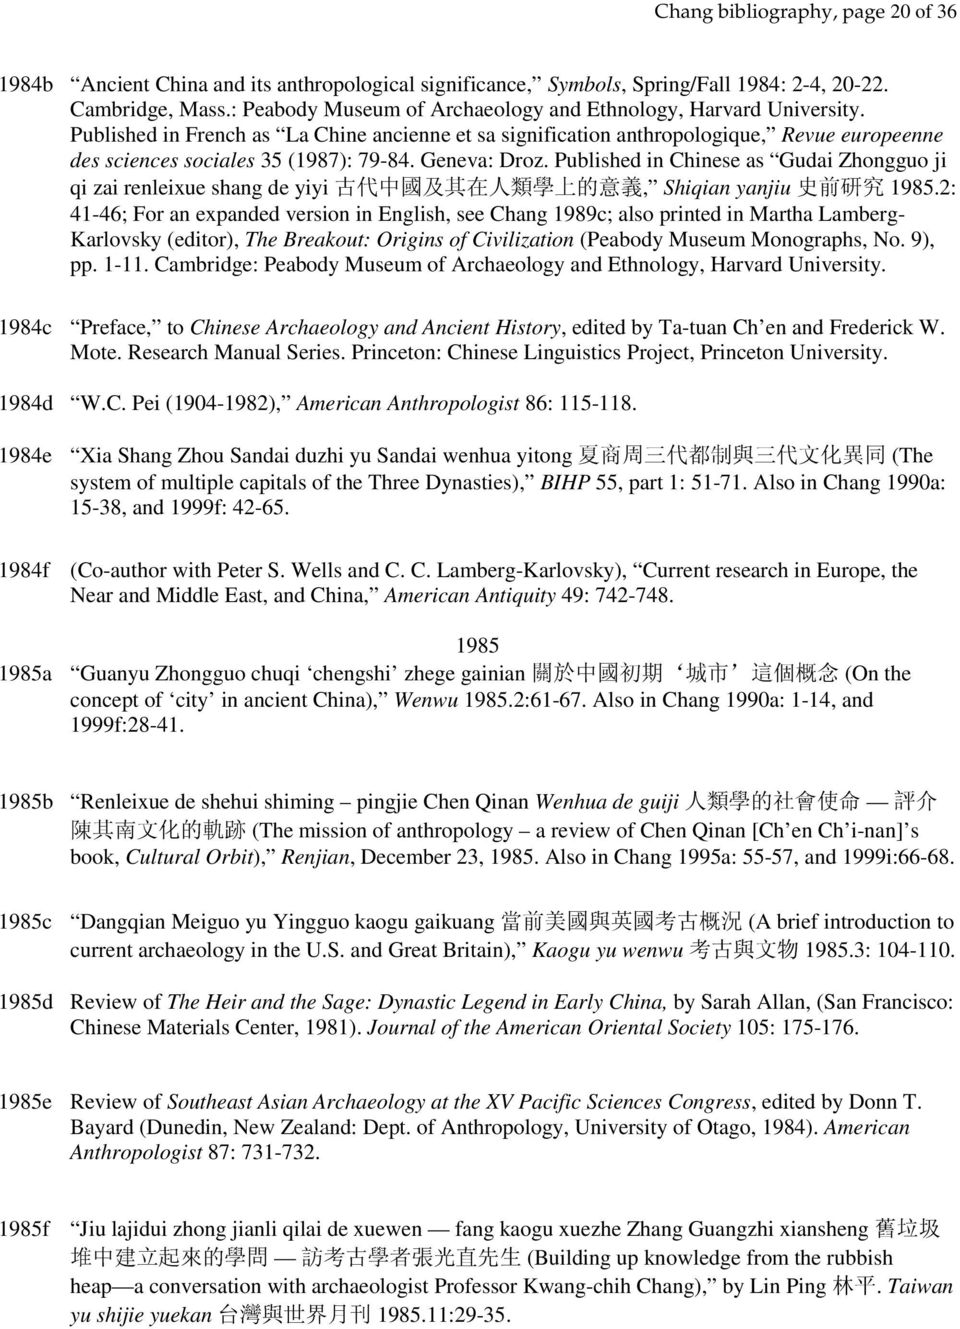 Published in French as La Chine ancienne et sa signification anthropologique, Revue europeenne des sciences sociales 35 (1987): 79-84. Geneva: Droz.